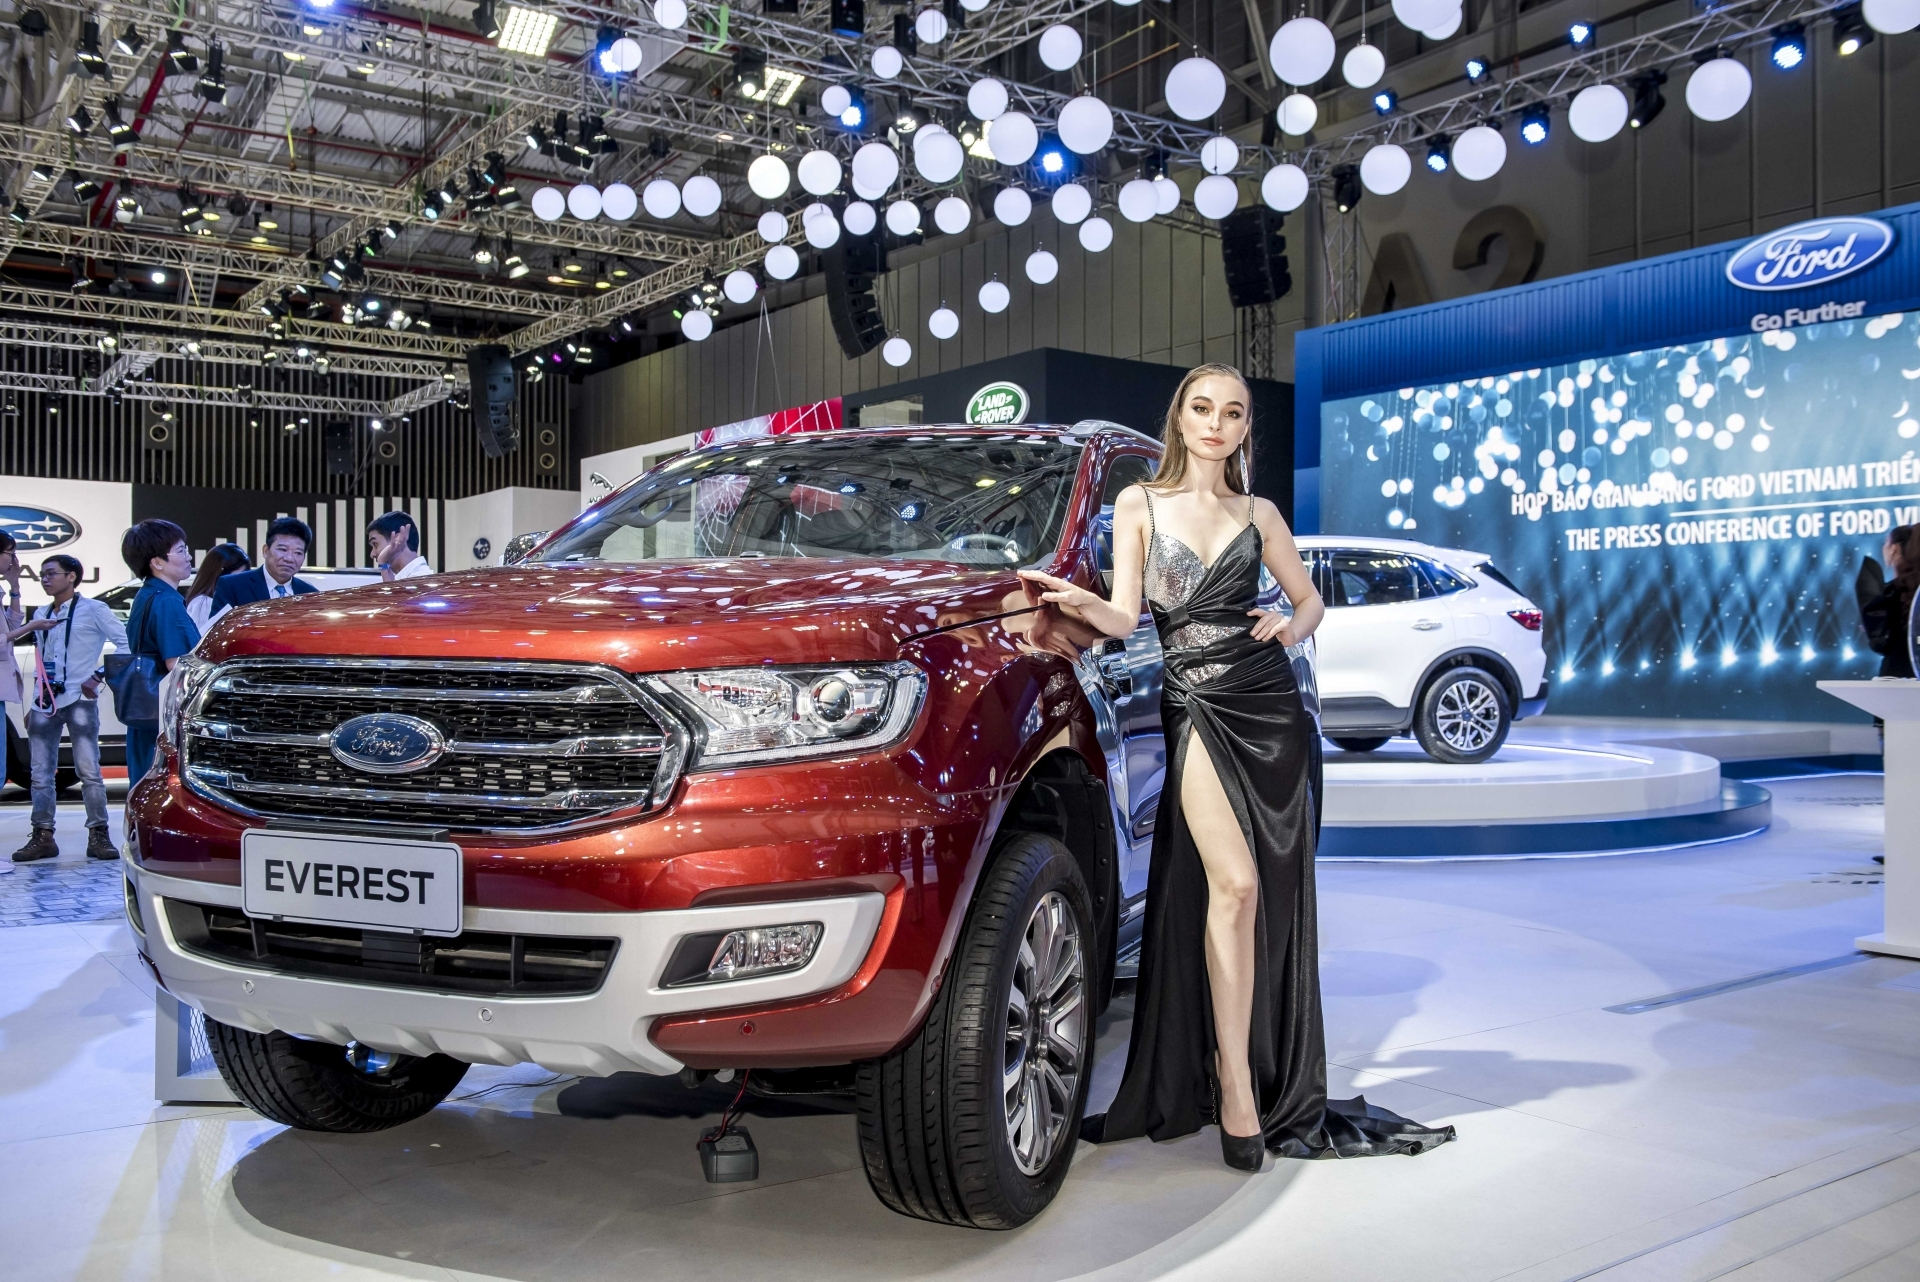 tam gia 14 ty dong mua toyota fotuner hay ford everest choi tet 2020